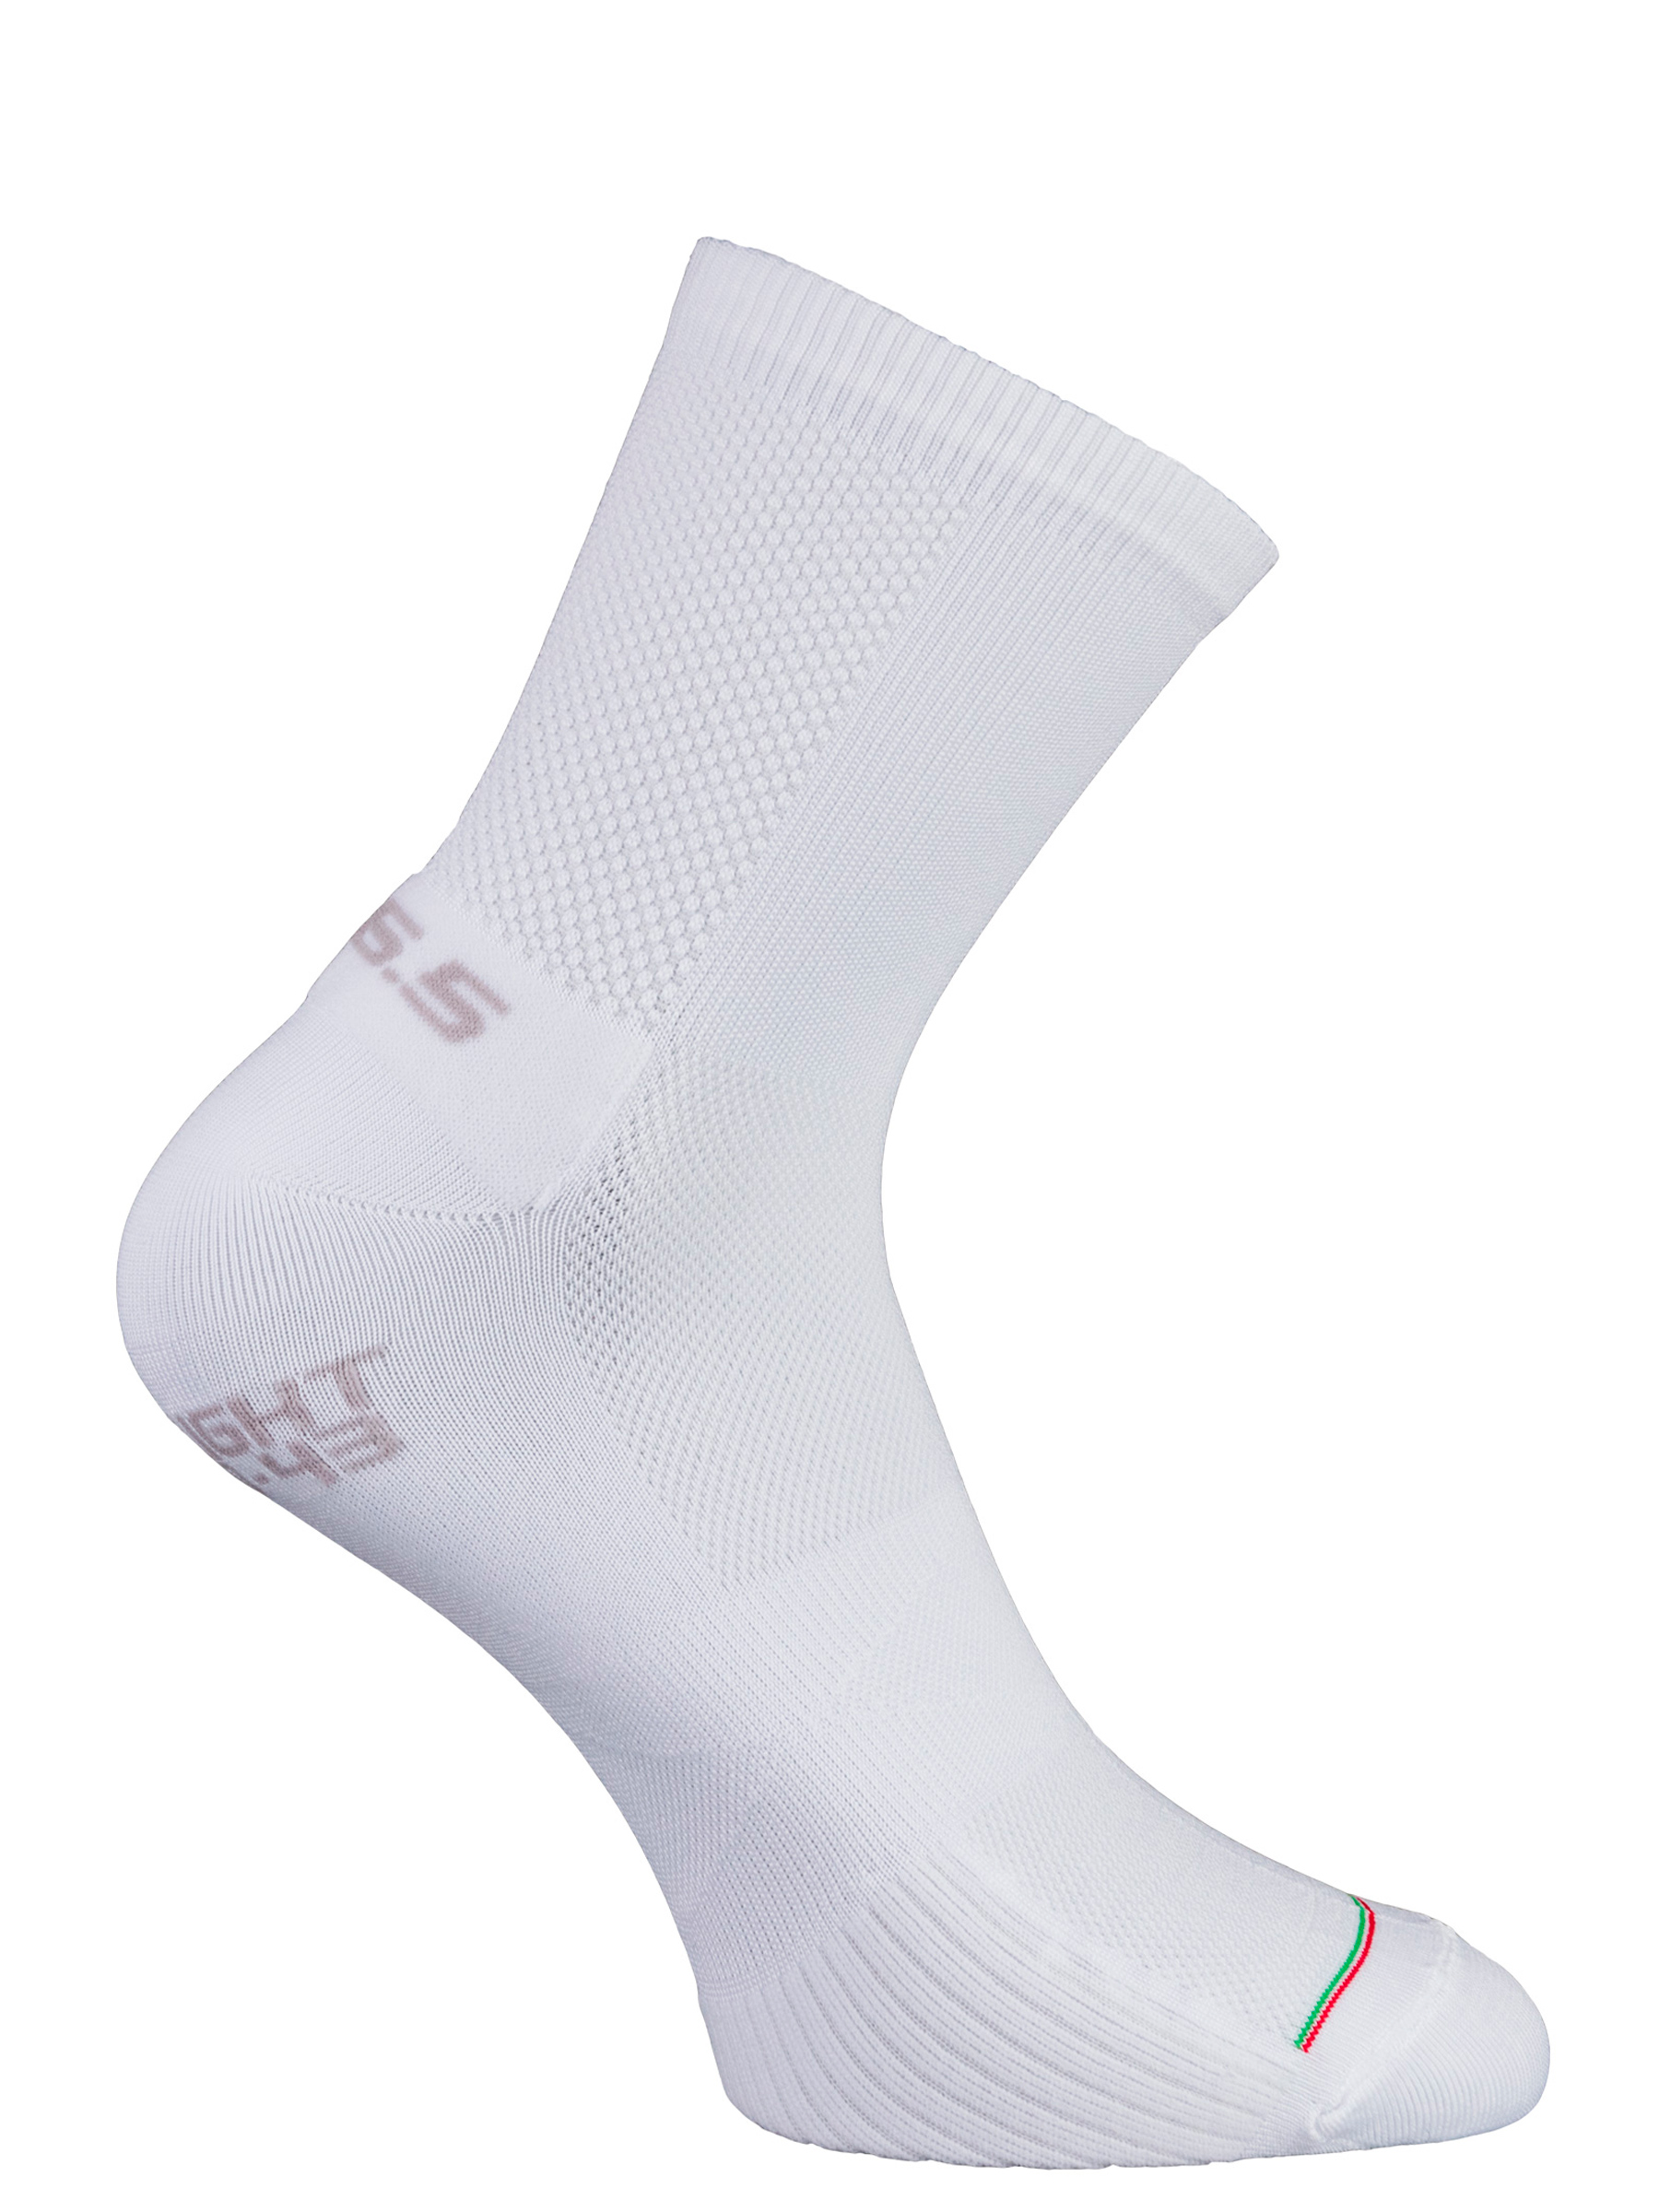 Cycling socks Ultralight Pure White Q36.5